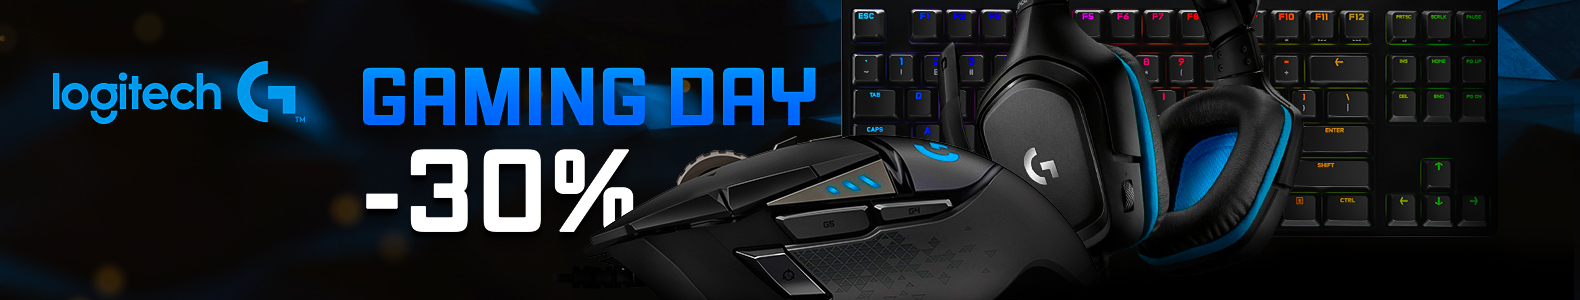 Gaming Day by Logitech!